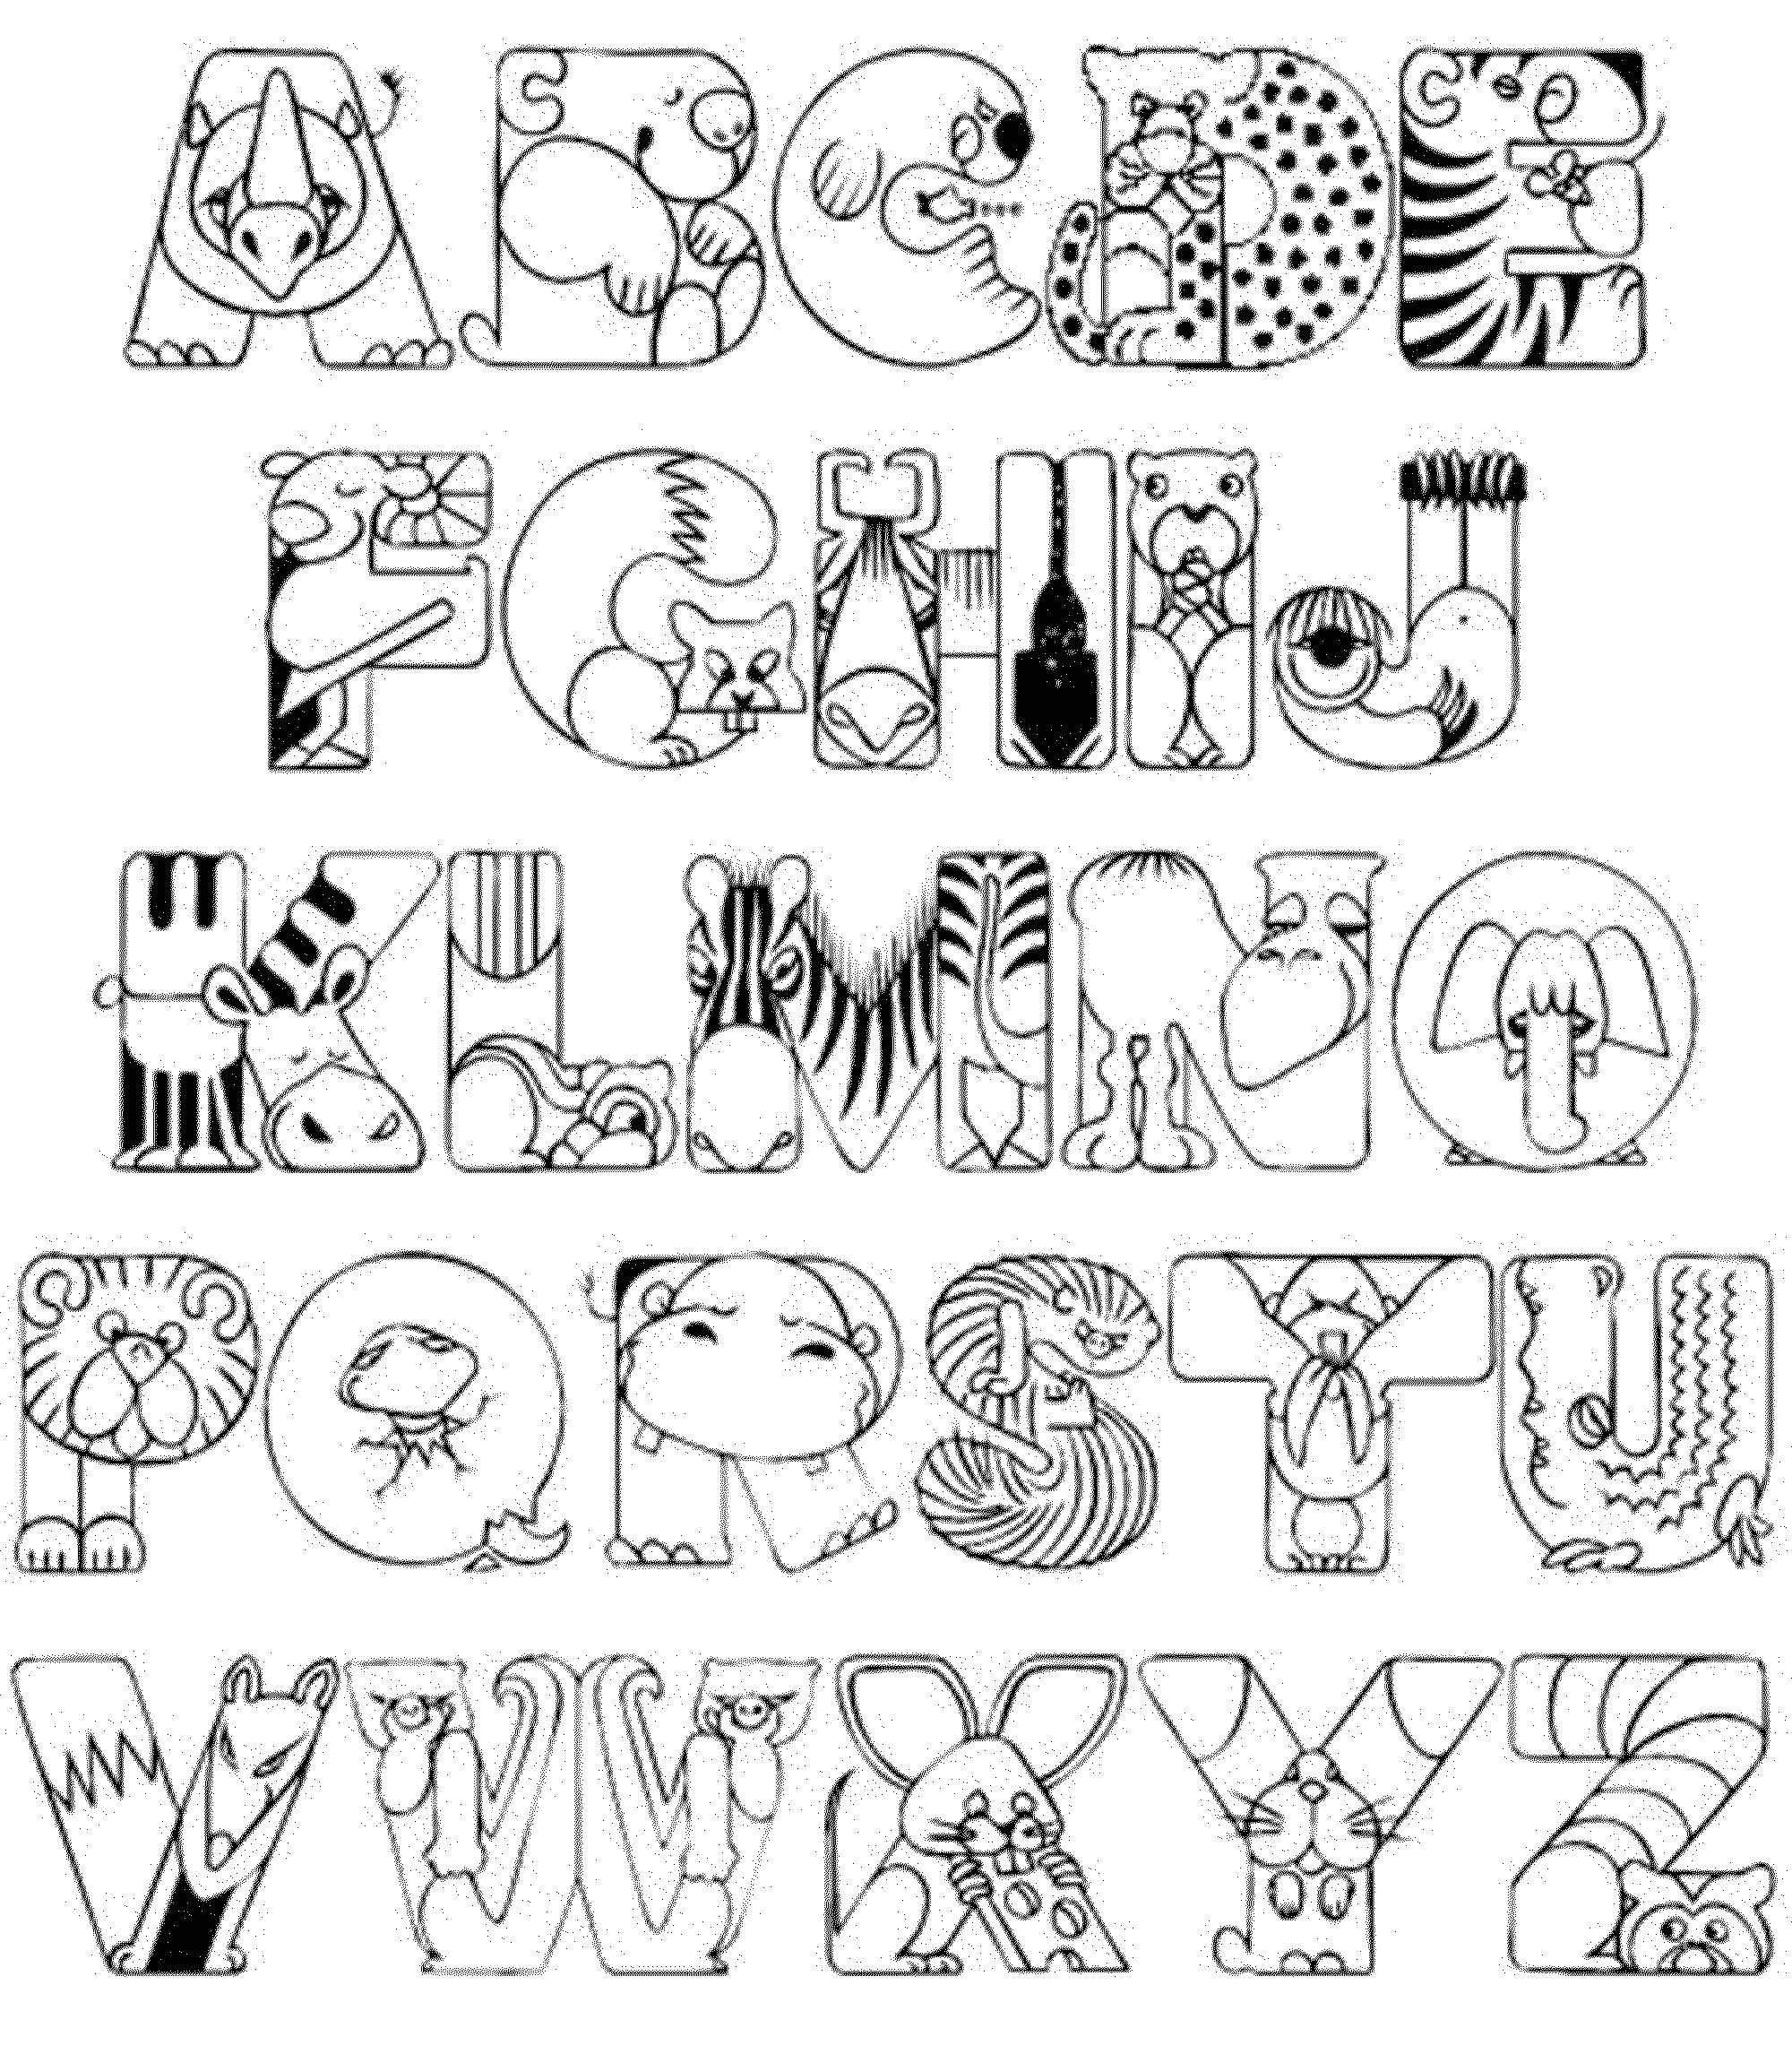 Abc Coloring Pages Endearing Abccoloringpagesforkindergarten   Bestappsforkids Decorating Design